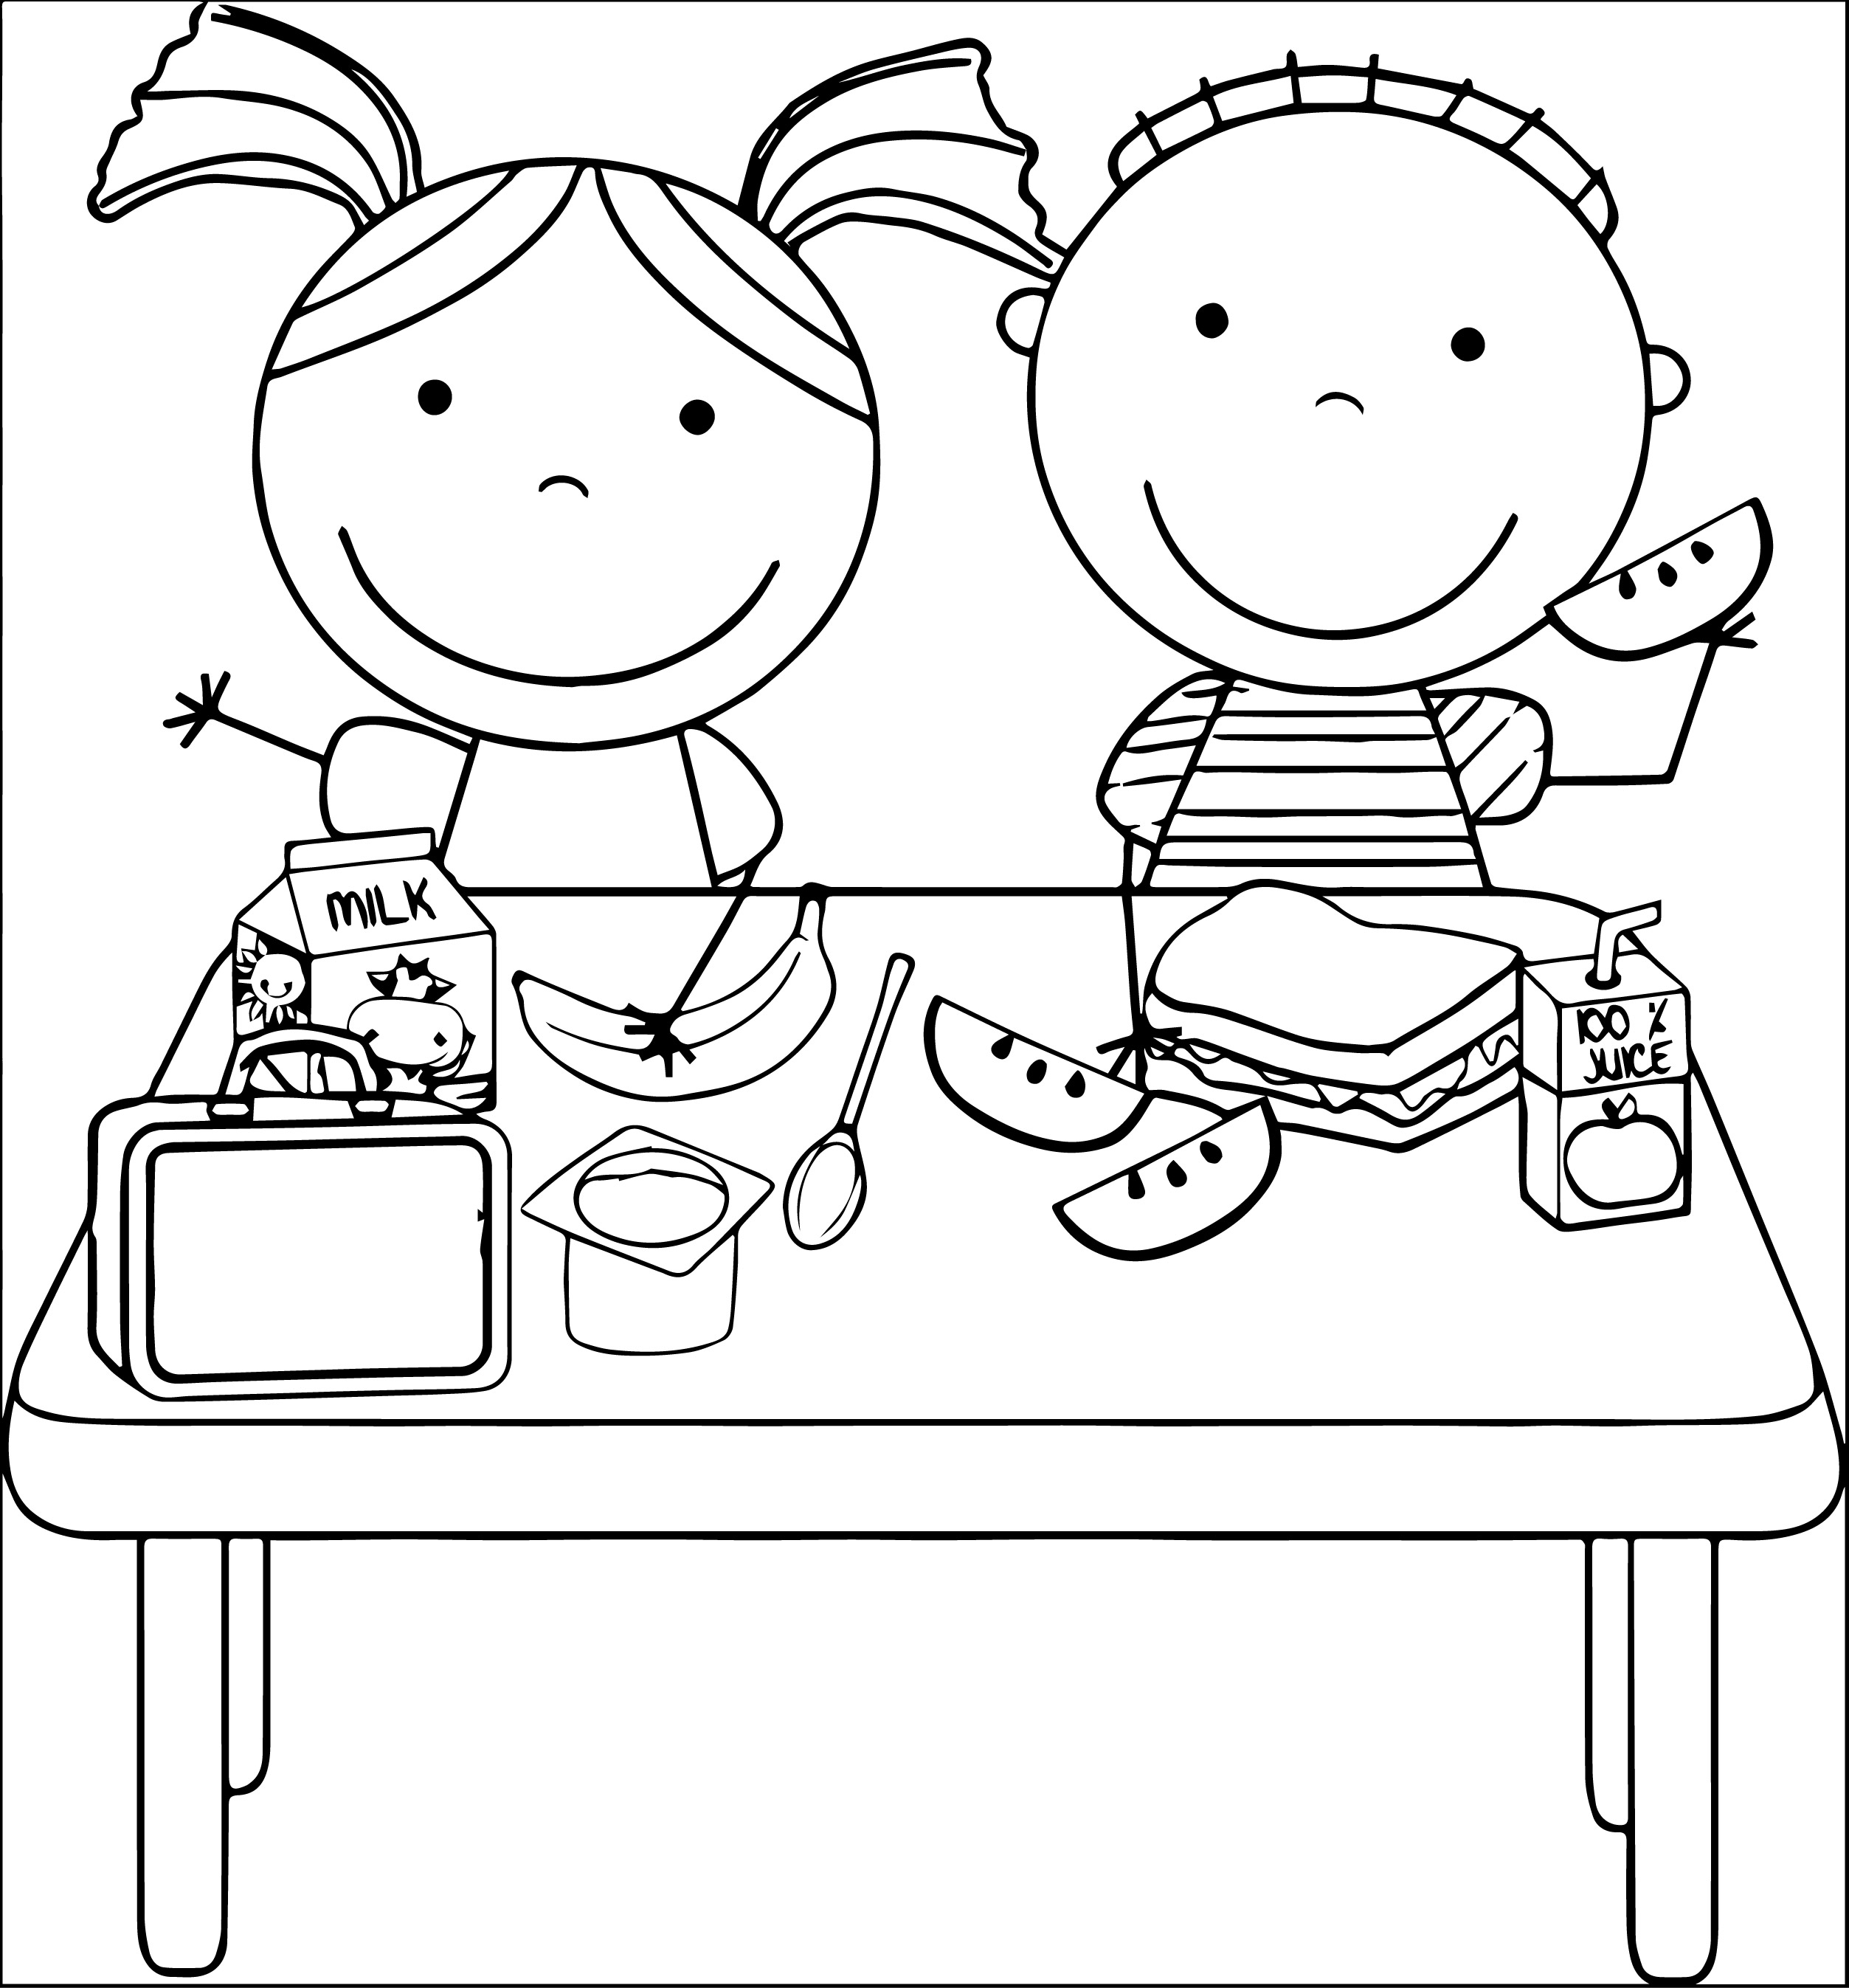 Black and white clipart for child eating clip freeuse stock Free Eat Black And White Clipart, Download Free Clip Art, Free Clip ... clip freeuse stock